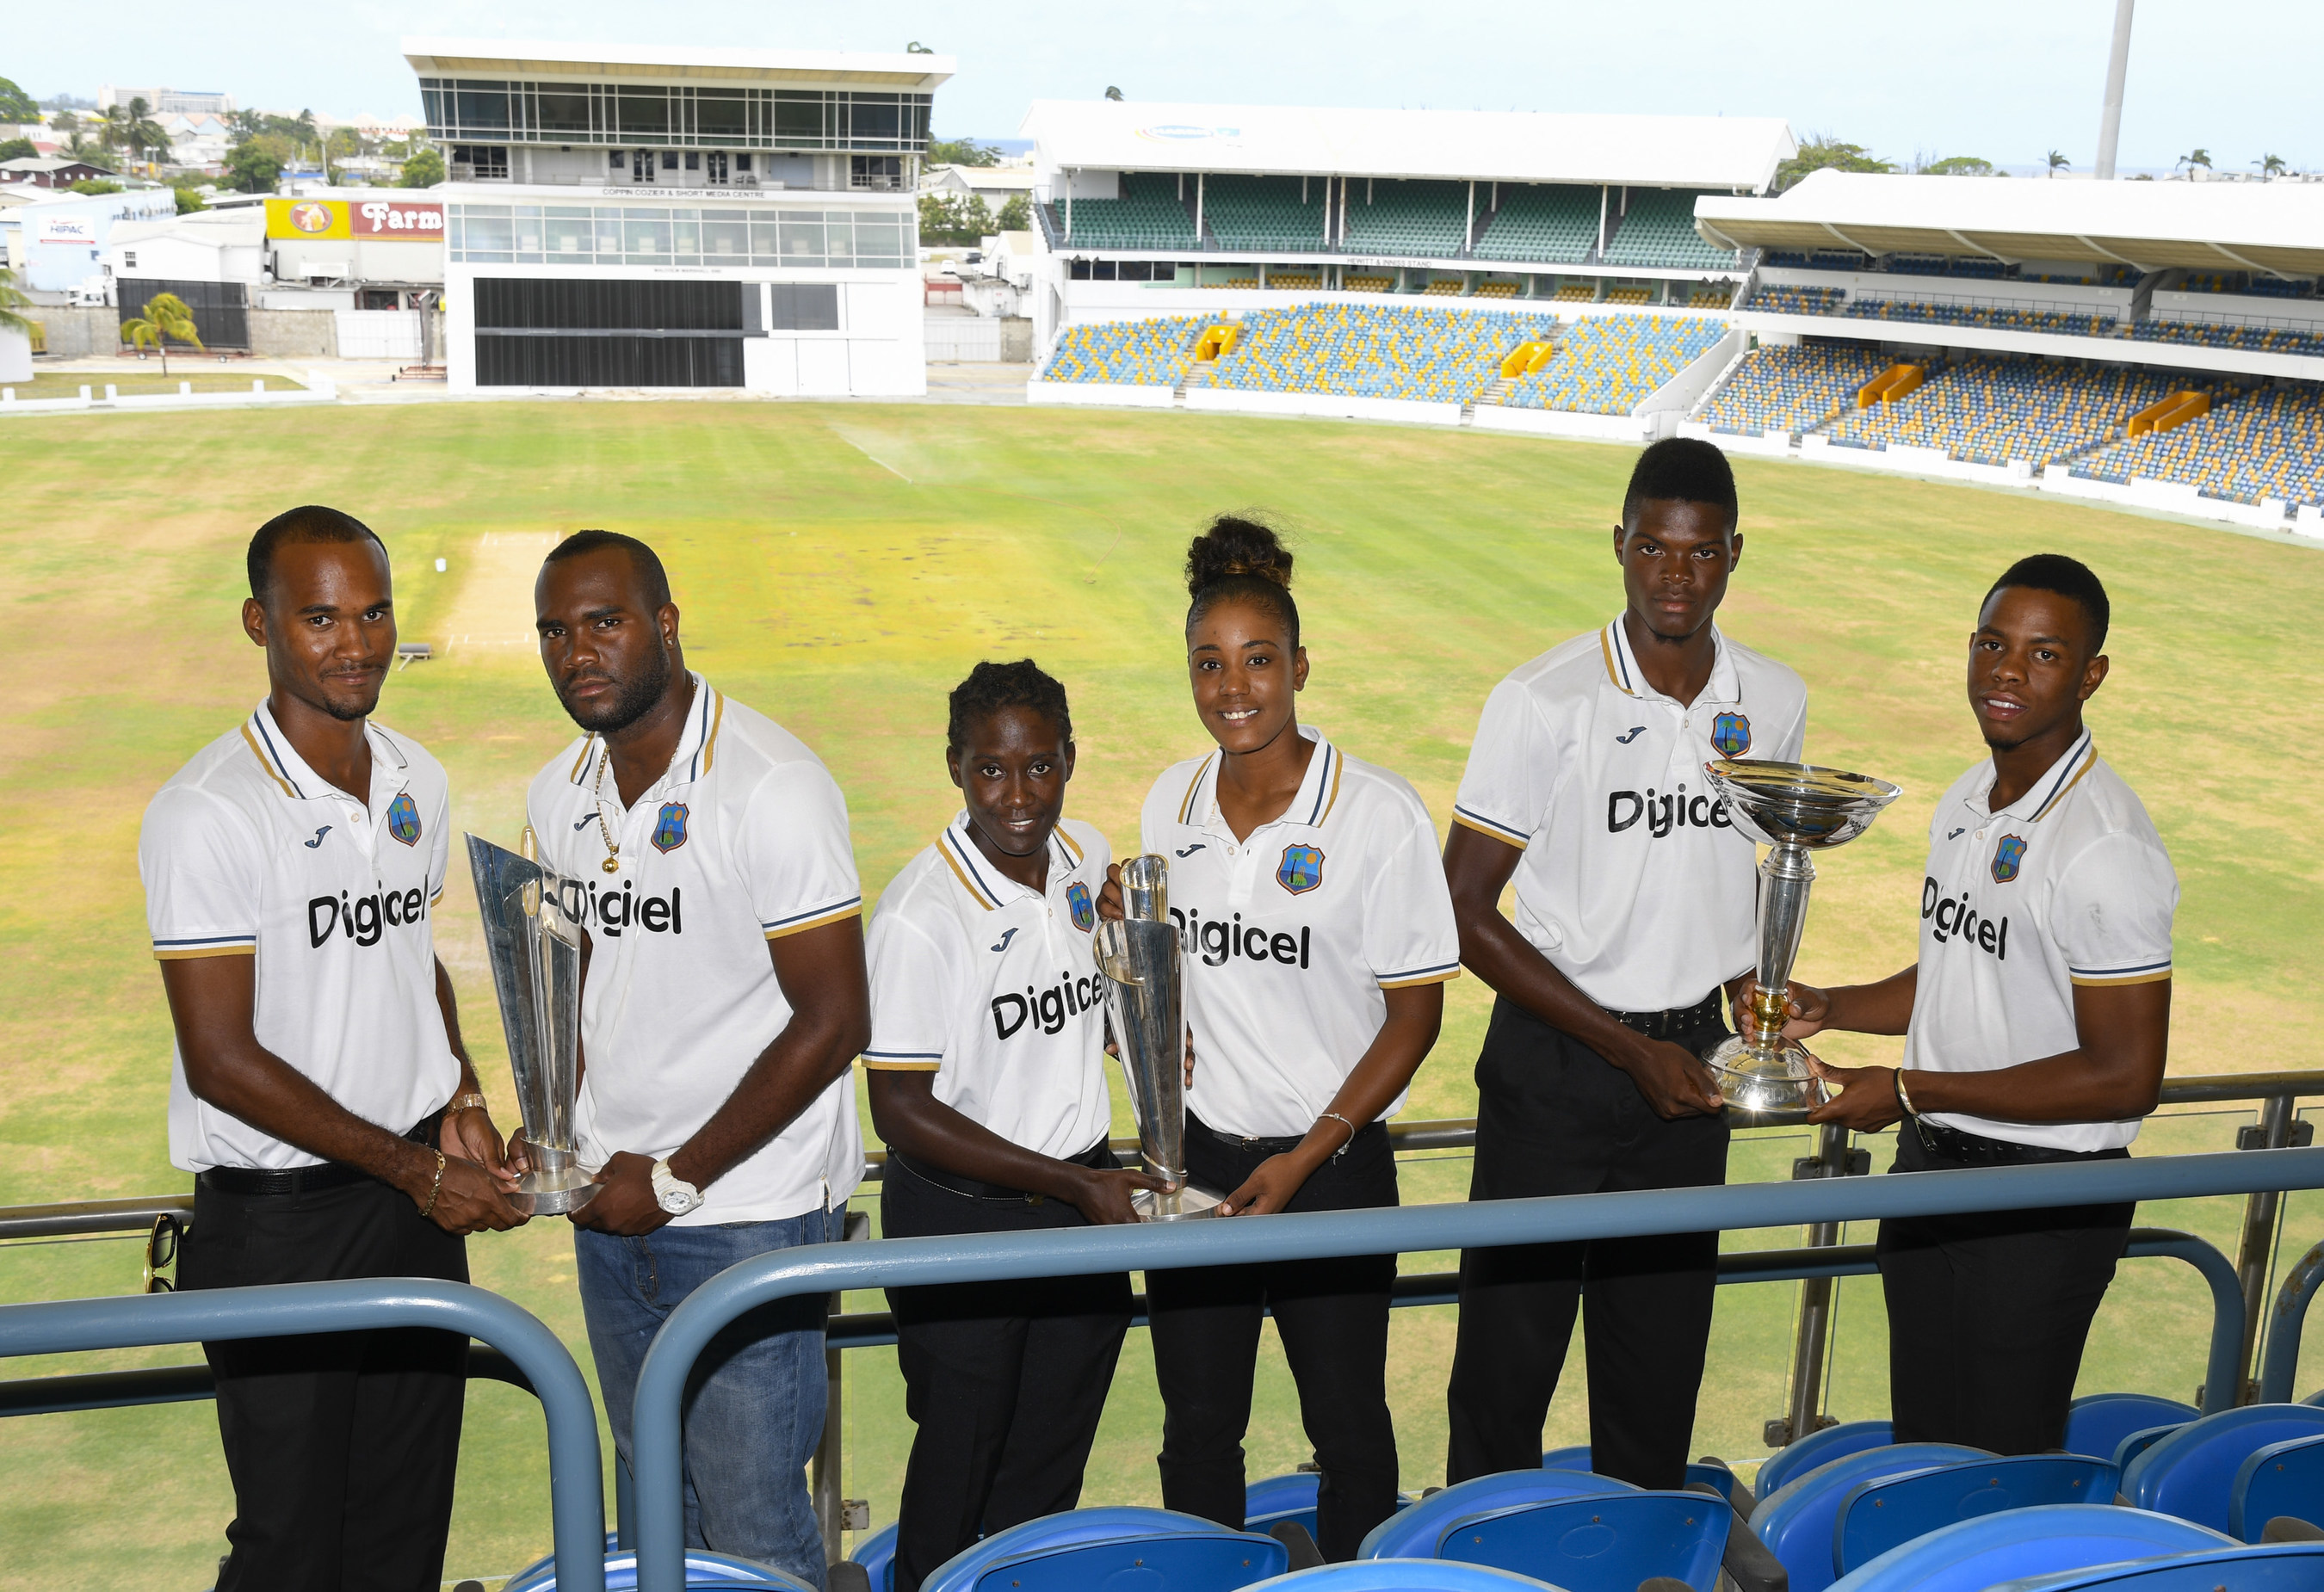 Members of the West Indies Cricket teams pose with their champion trophies: Kraigg Brathwaite and Ashley Nurse from the Men's team, Kycia Knight and Hayley Matthews from the Women's team and Alzarri Joseph and Shimron Hetmyer from the Under-19 team.